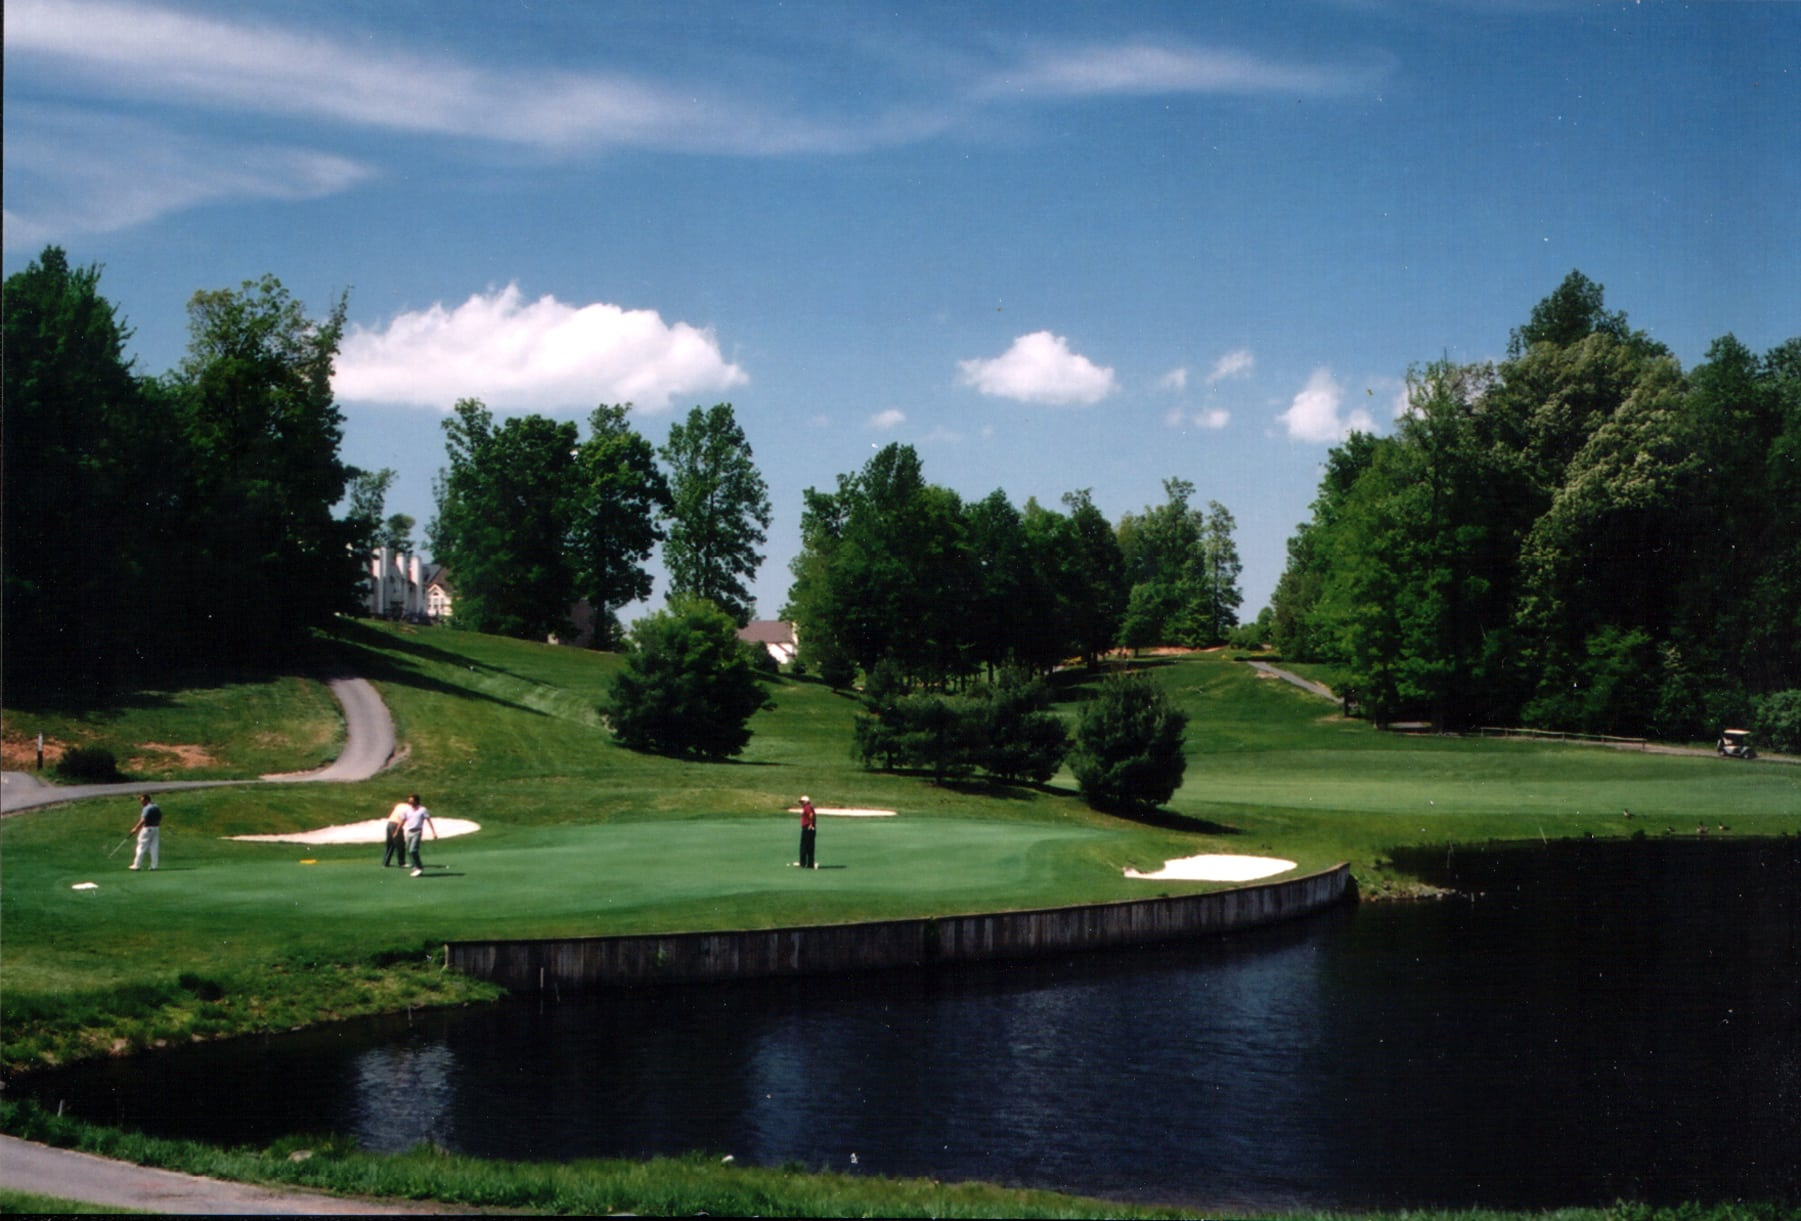 Penderbrook's golf course with water hazard and green in background